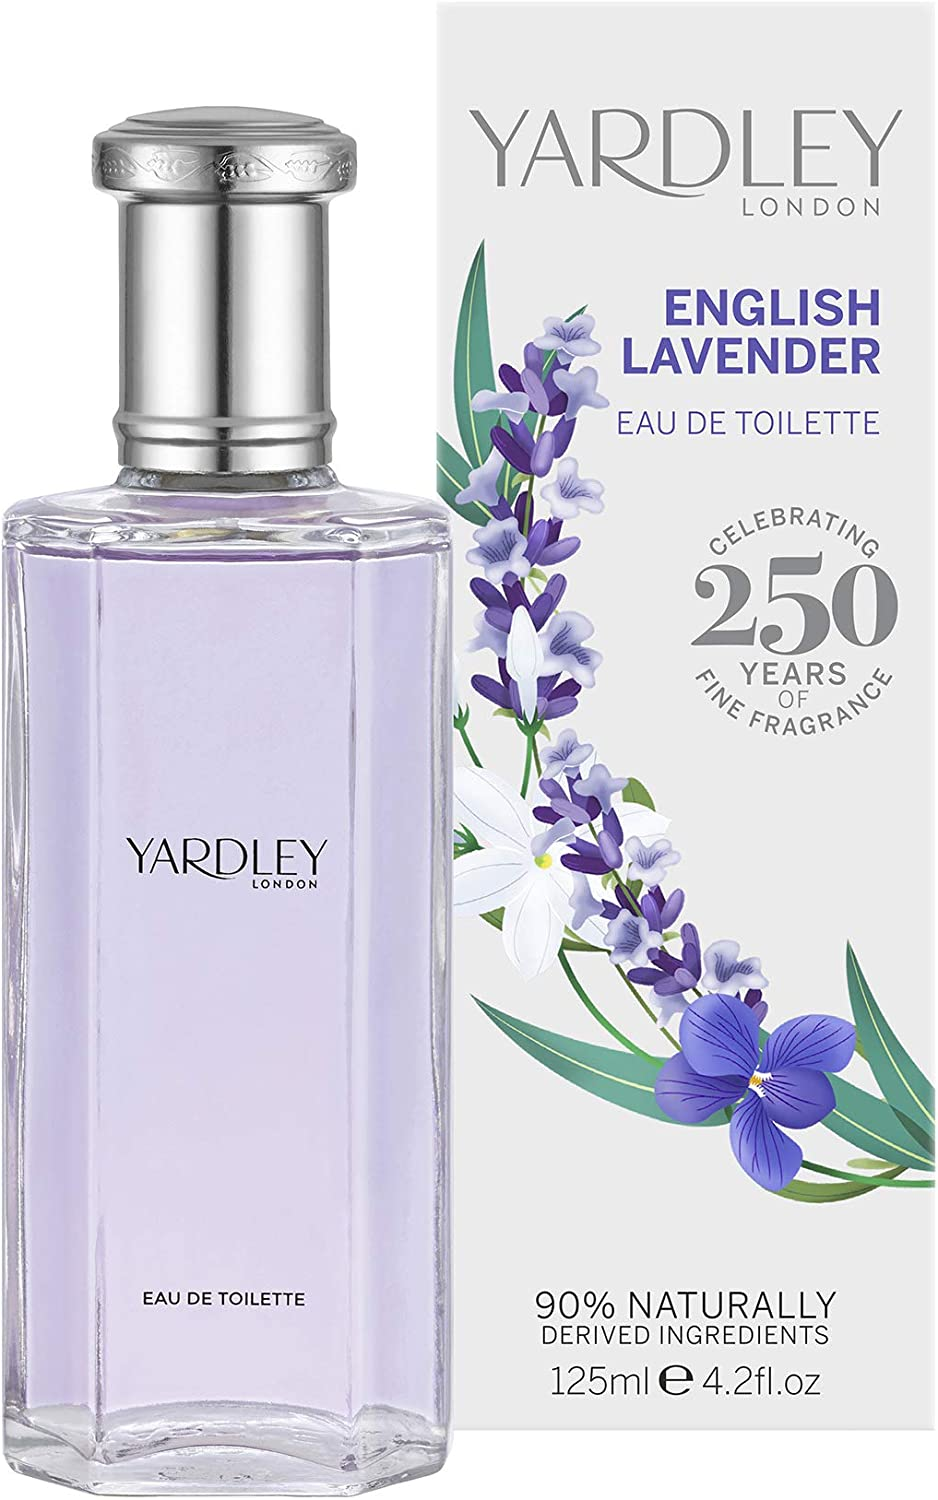 Lavender 50 grams of Natural English Fragrant Lavender Top Quality UK Product